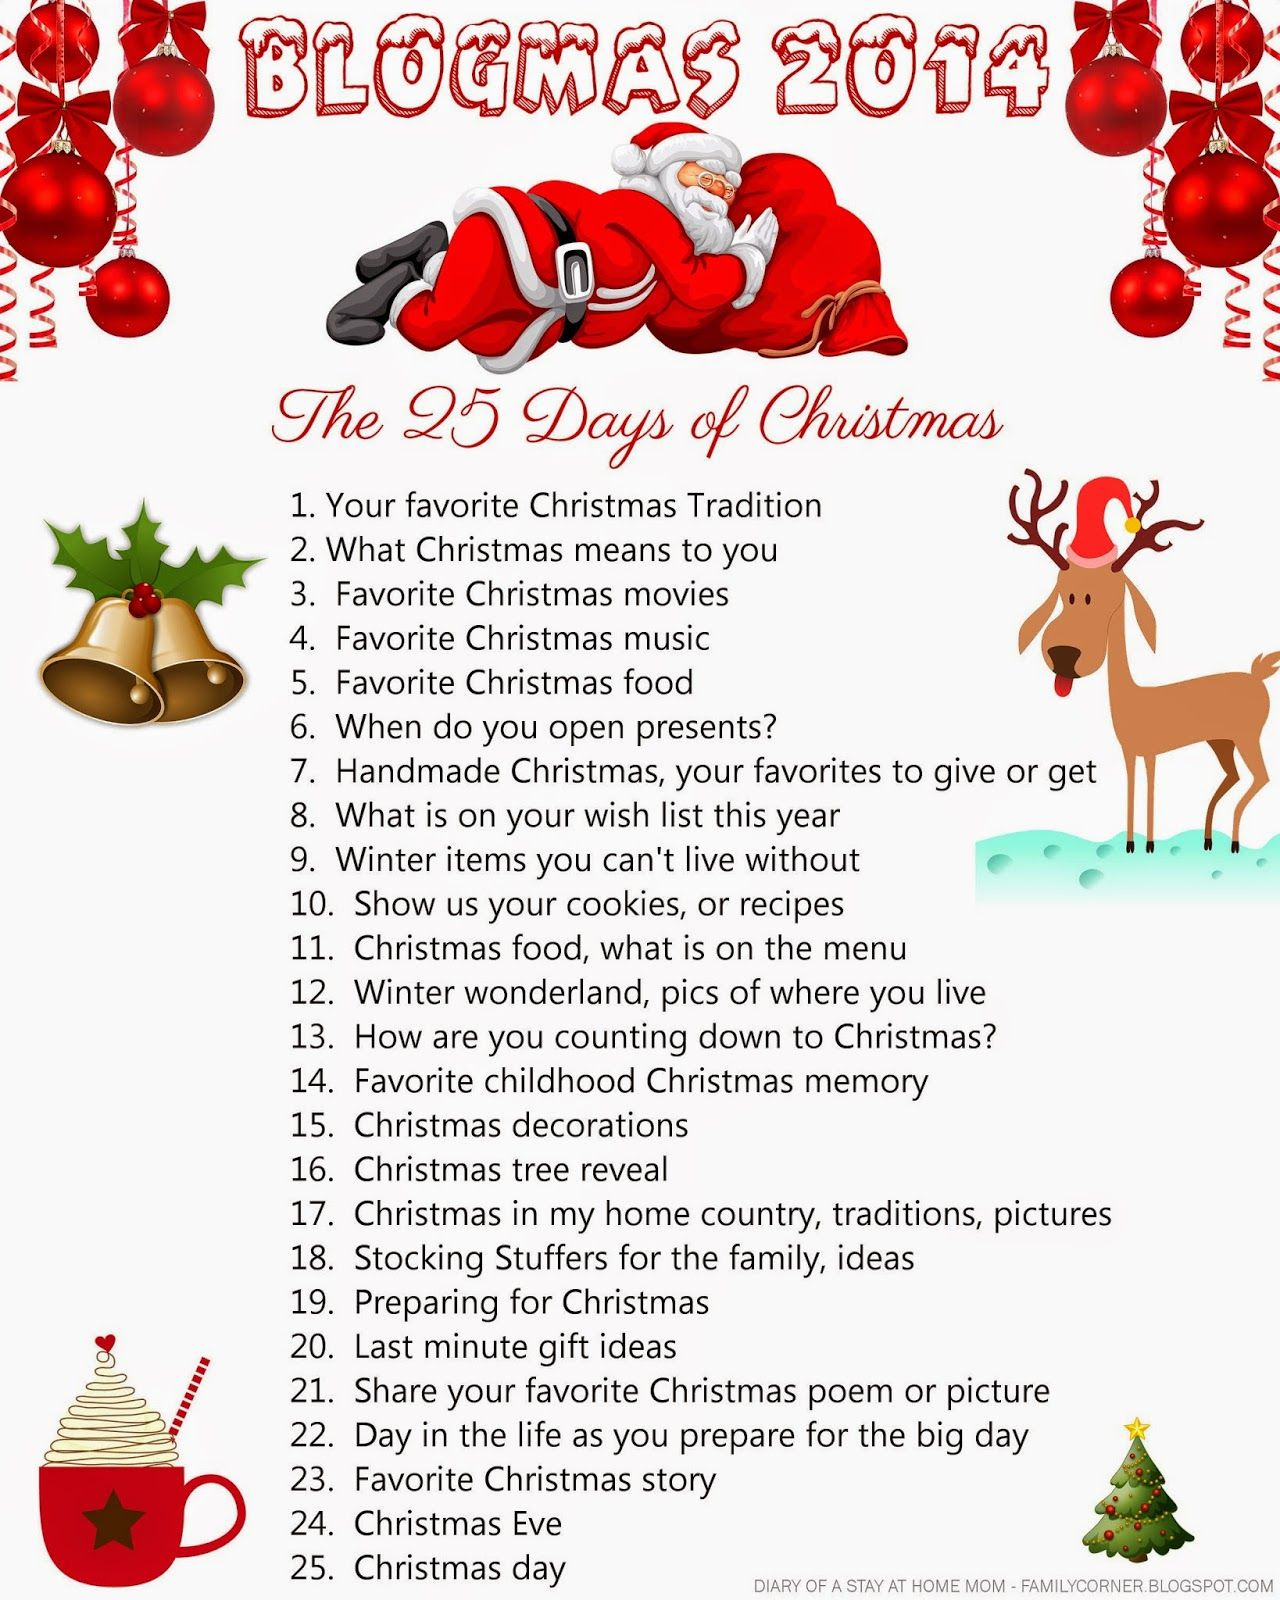 Diary Of A Stay At Home Mom Blogmas 2014 The 25 Days Of Christmas 25 Days Of Christmas Christmas Journal Christmas To Do List